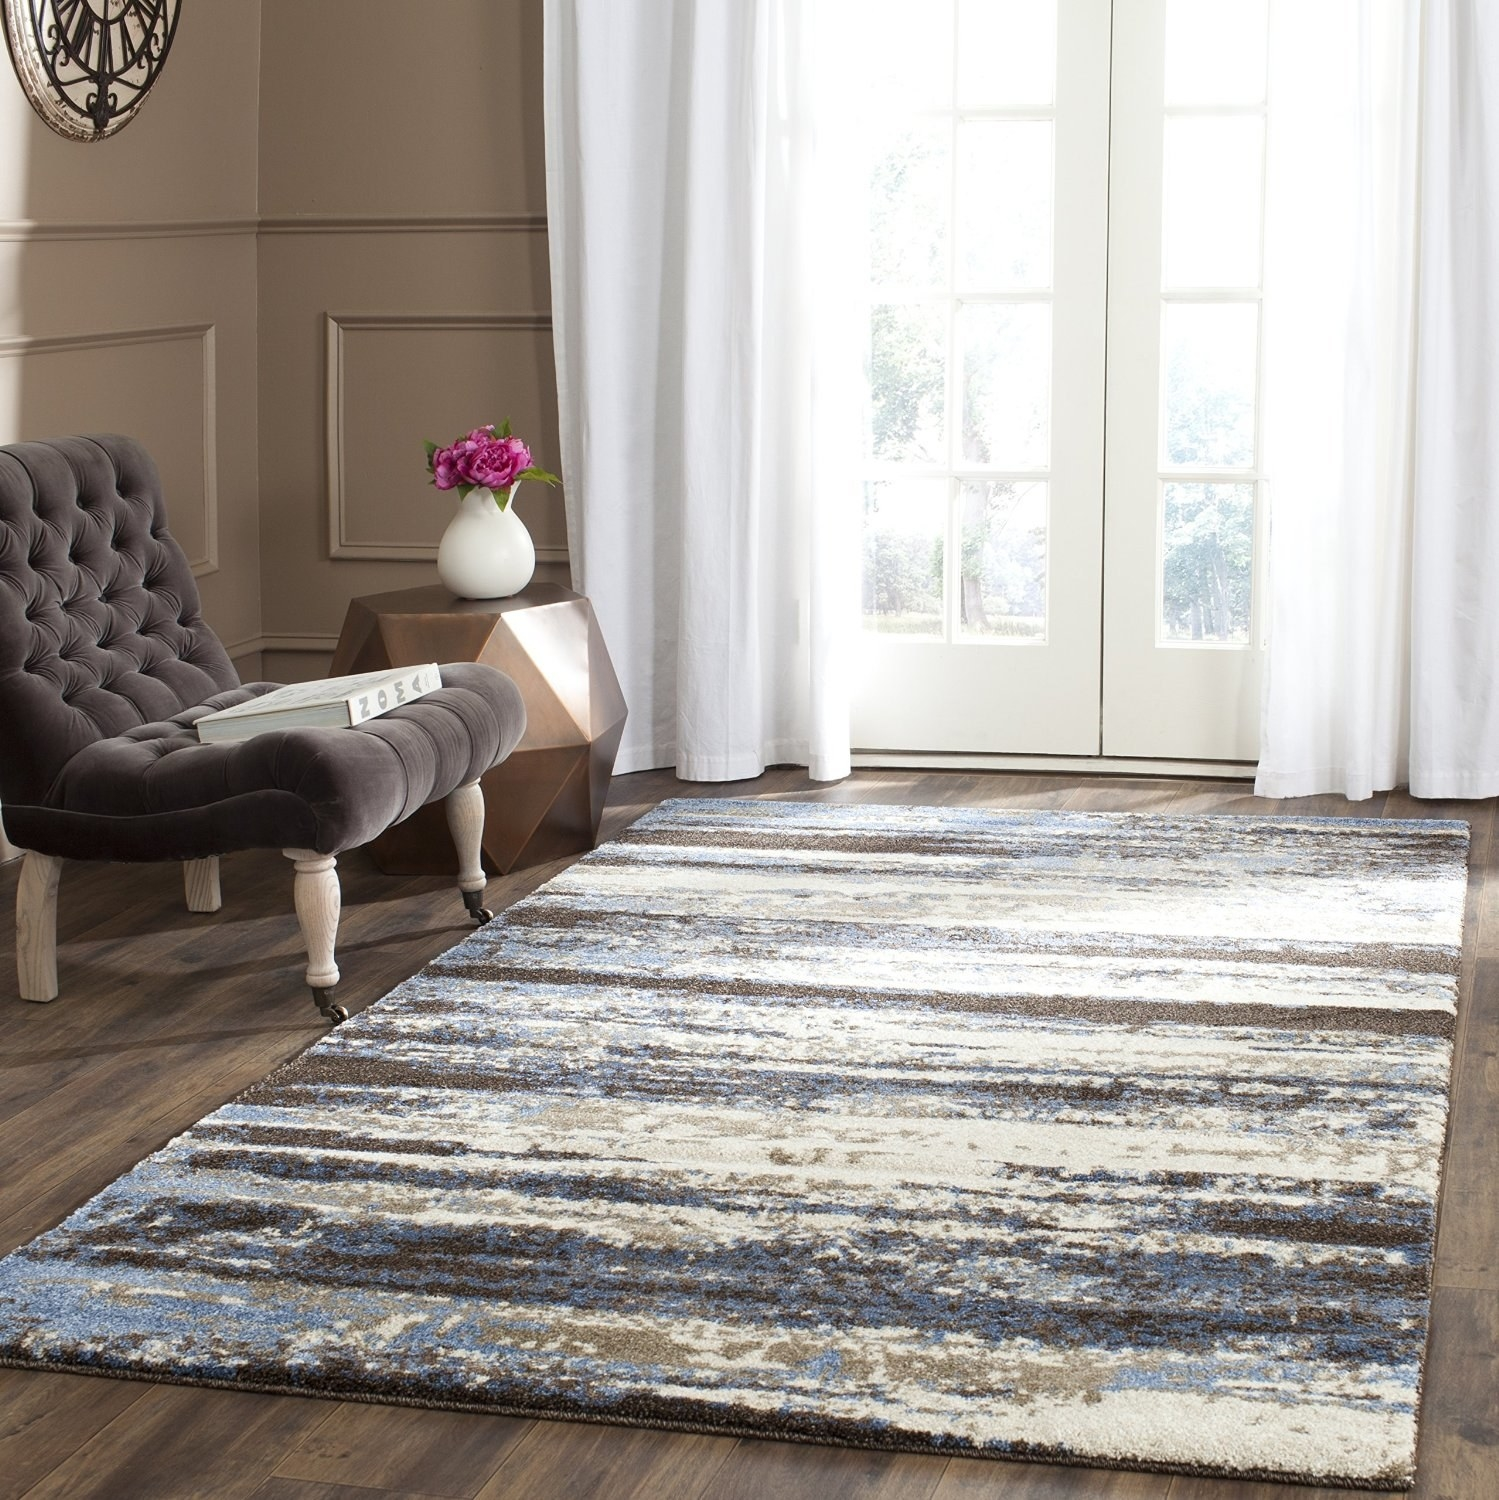 24. Make A Modern Statement With This Elegant Abstract Rug.